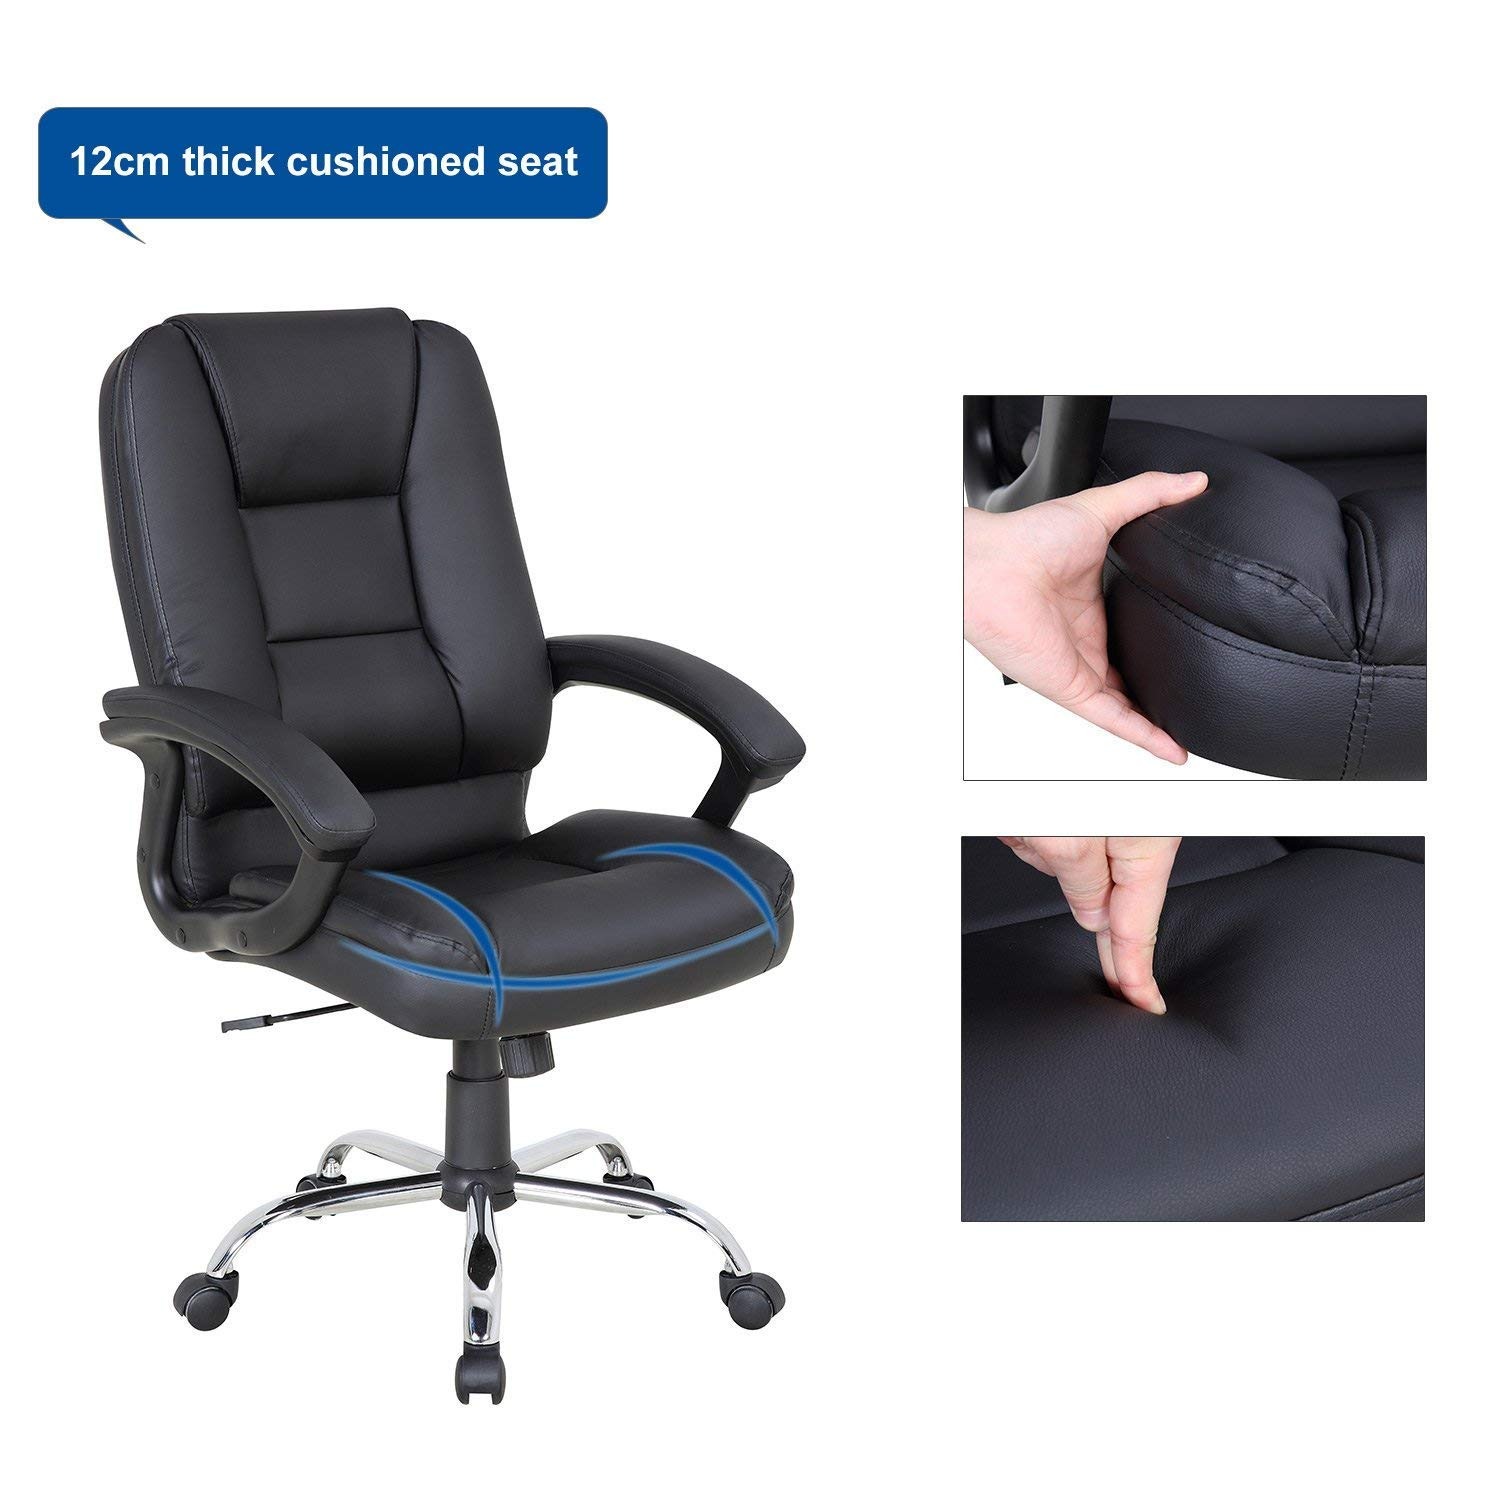 LCH PU Leather Office Chair Swivel Executive Chair with Tilt Function and Thick Seat, Ergonomic Computer Chair Headrest and Lumbar Support (Black) by LCH (Image #8)